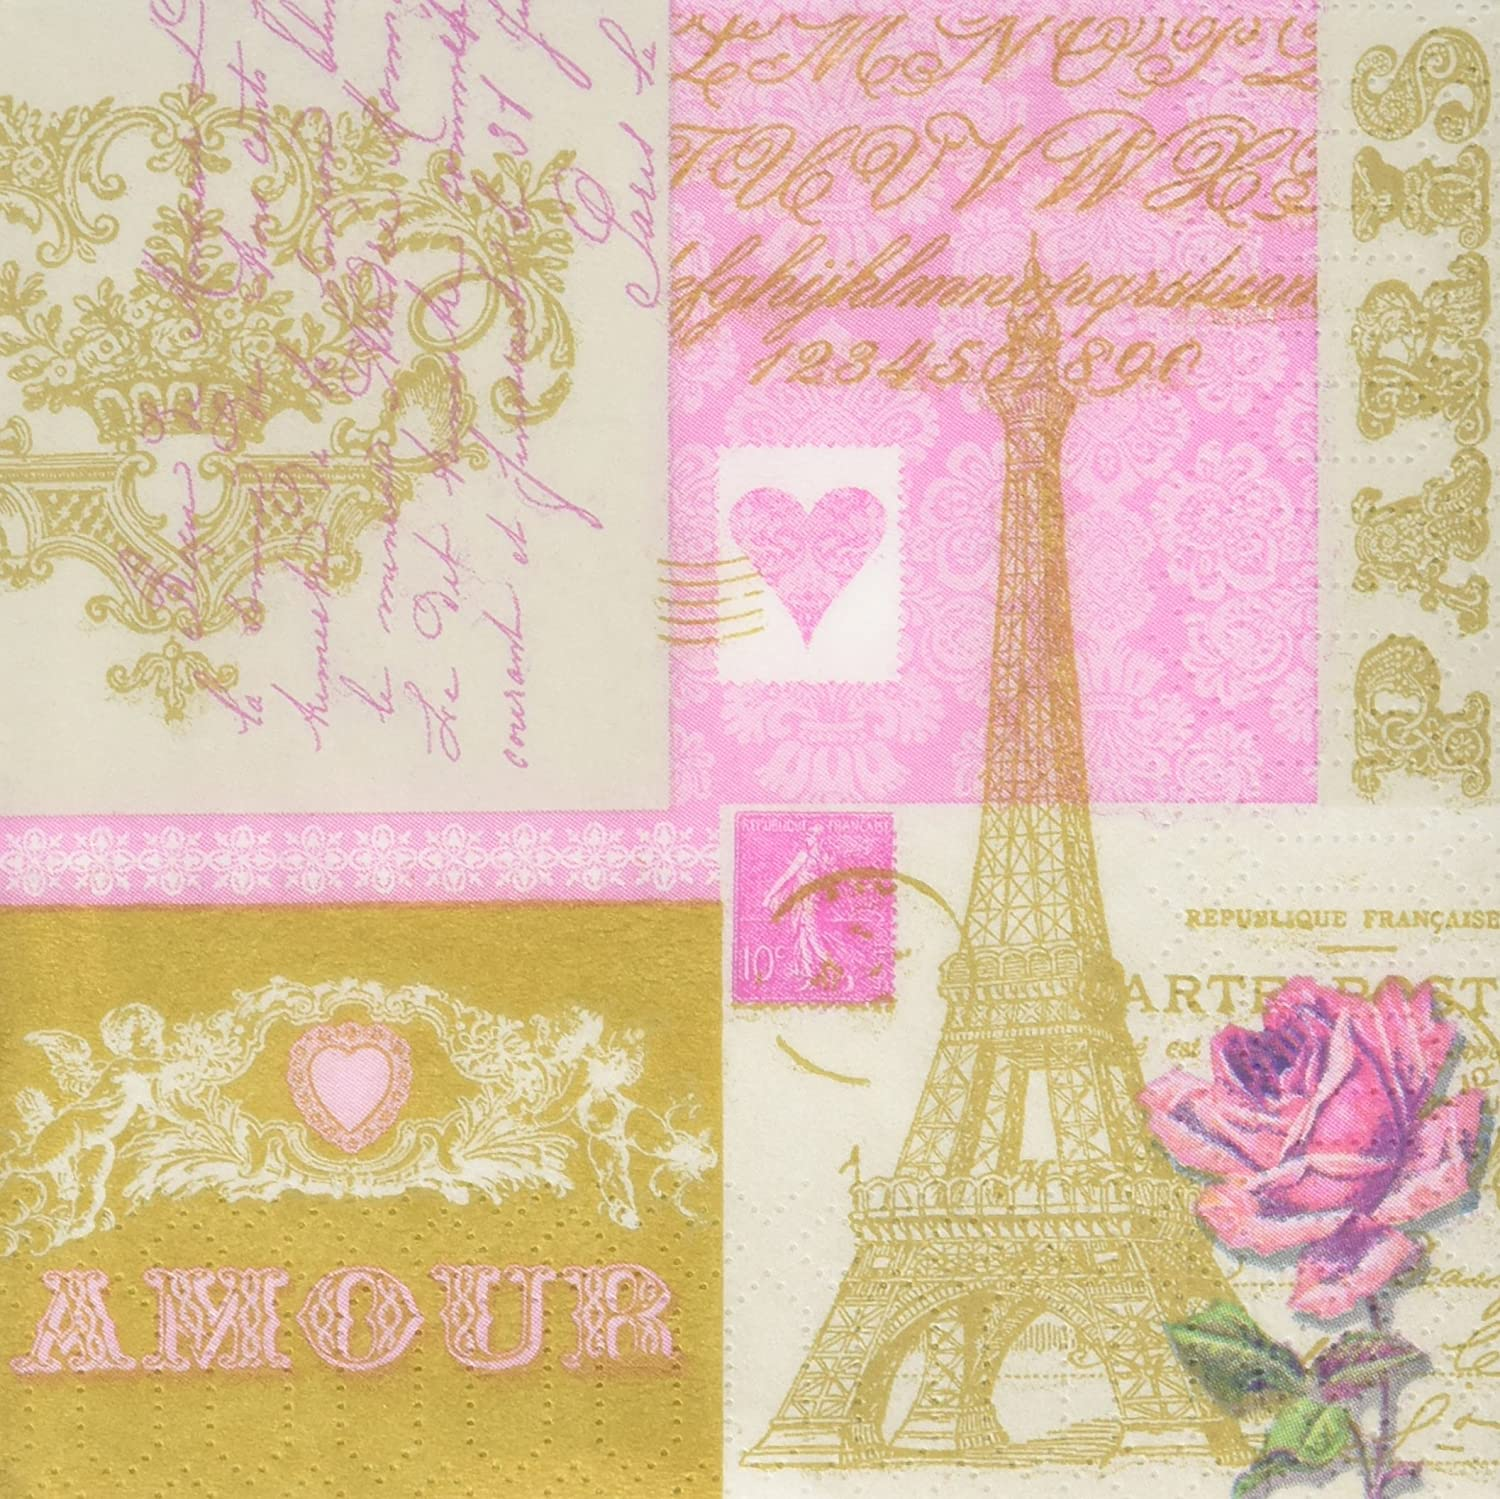 Paperproducts Design 7845 PPD Paper Beverage Napkin, 5 by 5-Inch, Je t'aime Paris